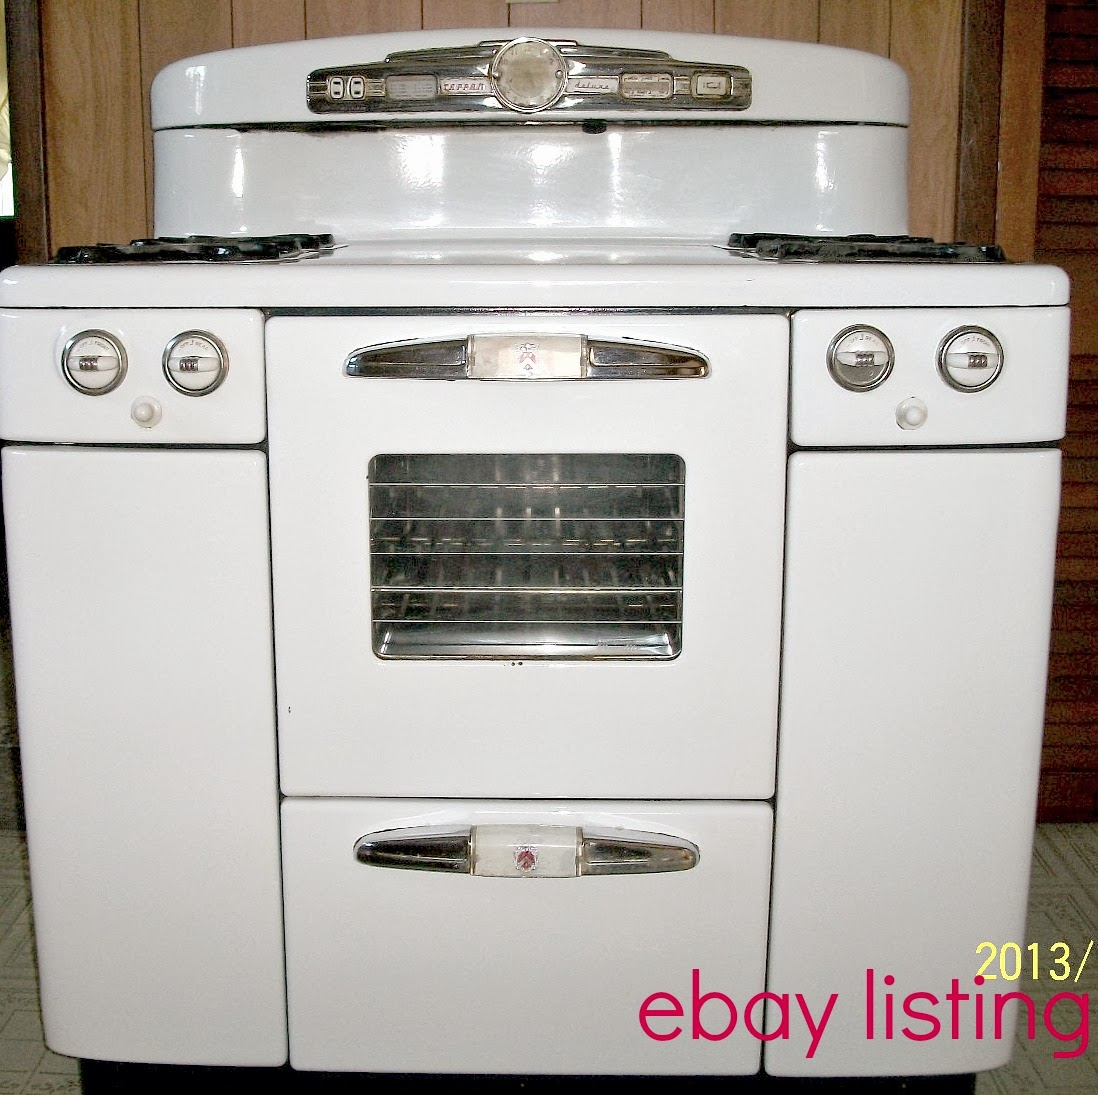 House Revivals: Tips for Finding the Perfect Vintage Stove